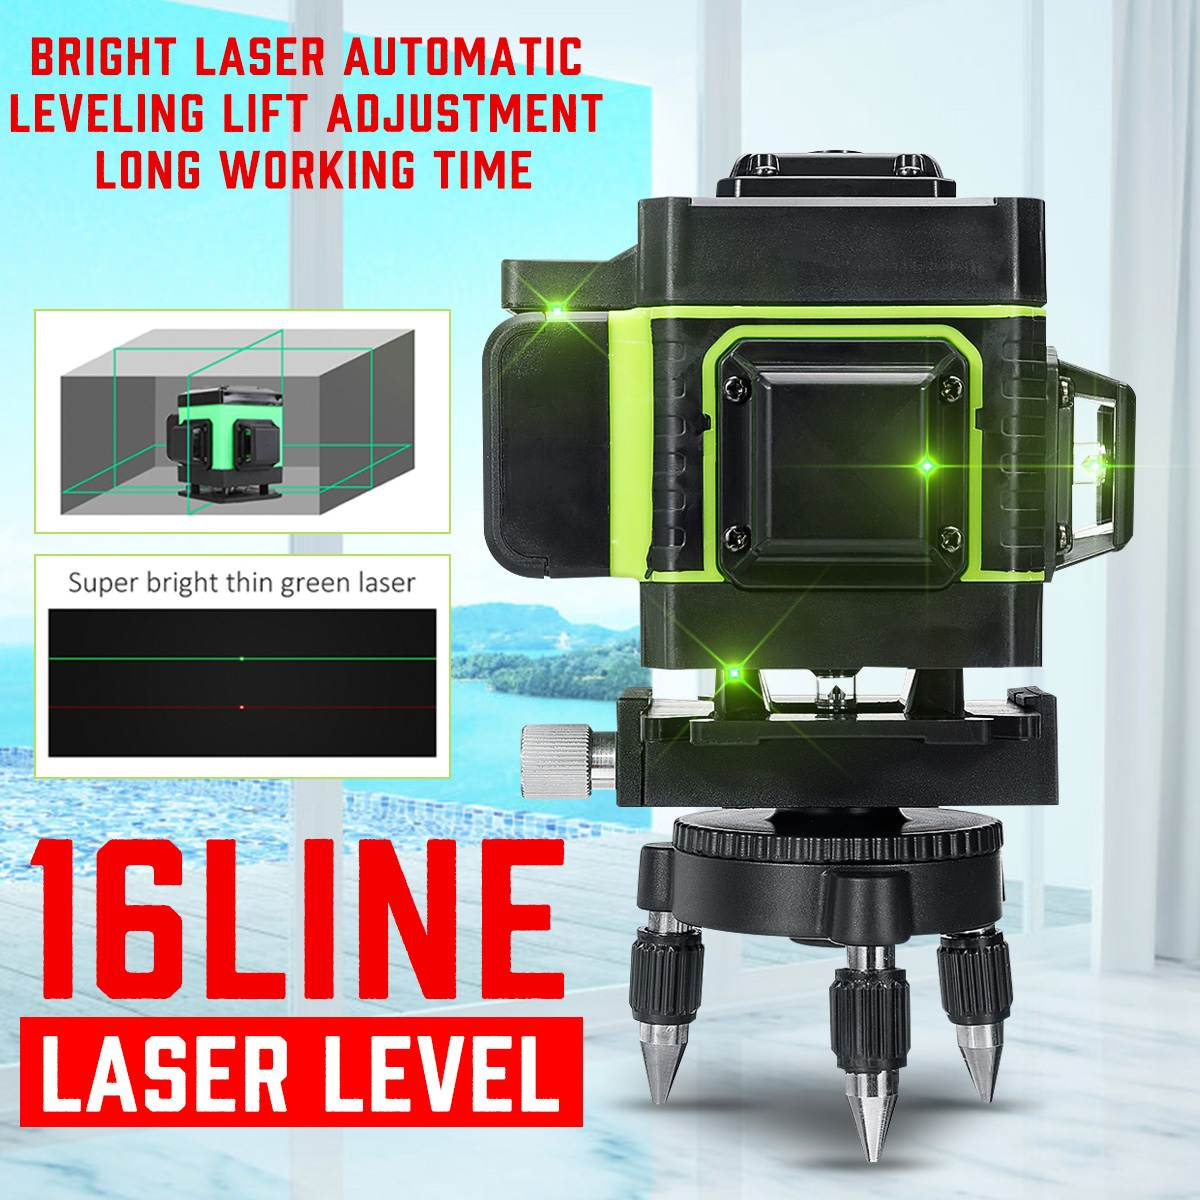 16 Lines Laser Level 12 Lines 3D Self-Leveling 360 Horizontal And Vertical Cross Super Powerful Green Laser Beam Line + Tripod